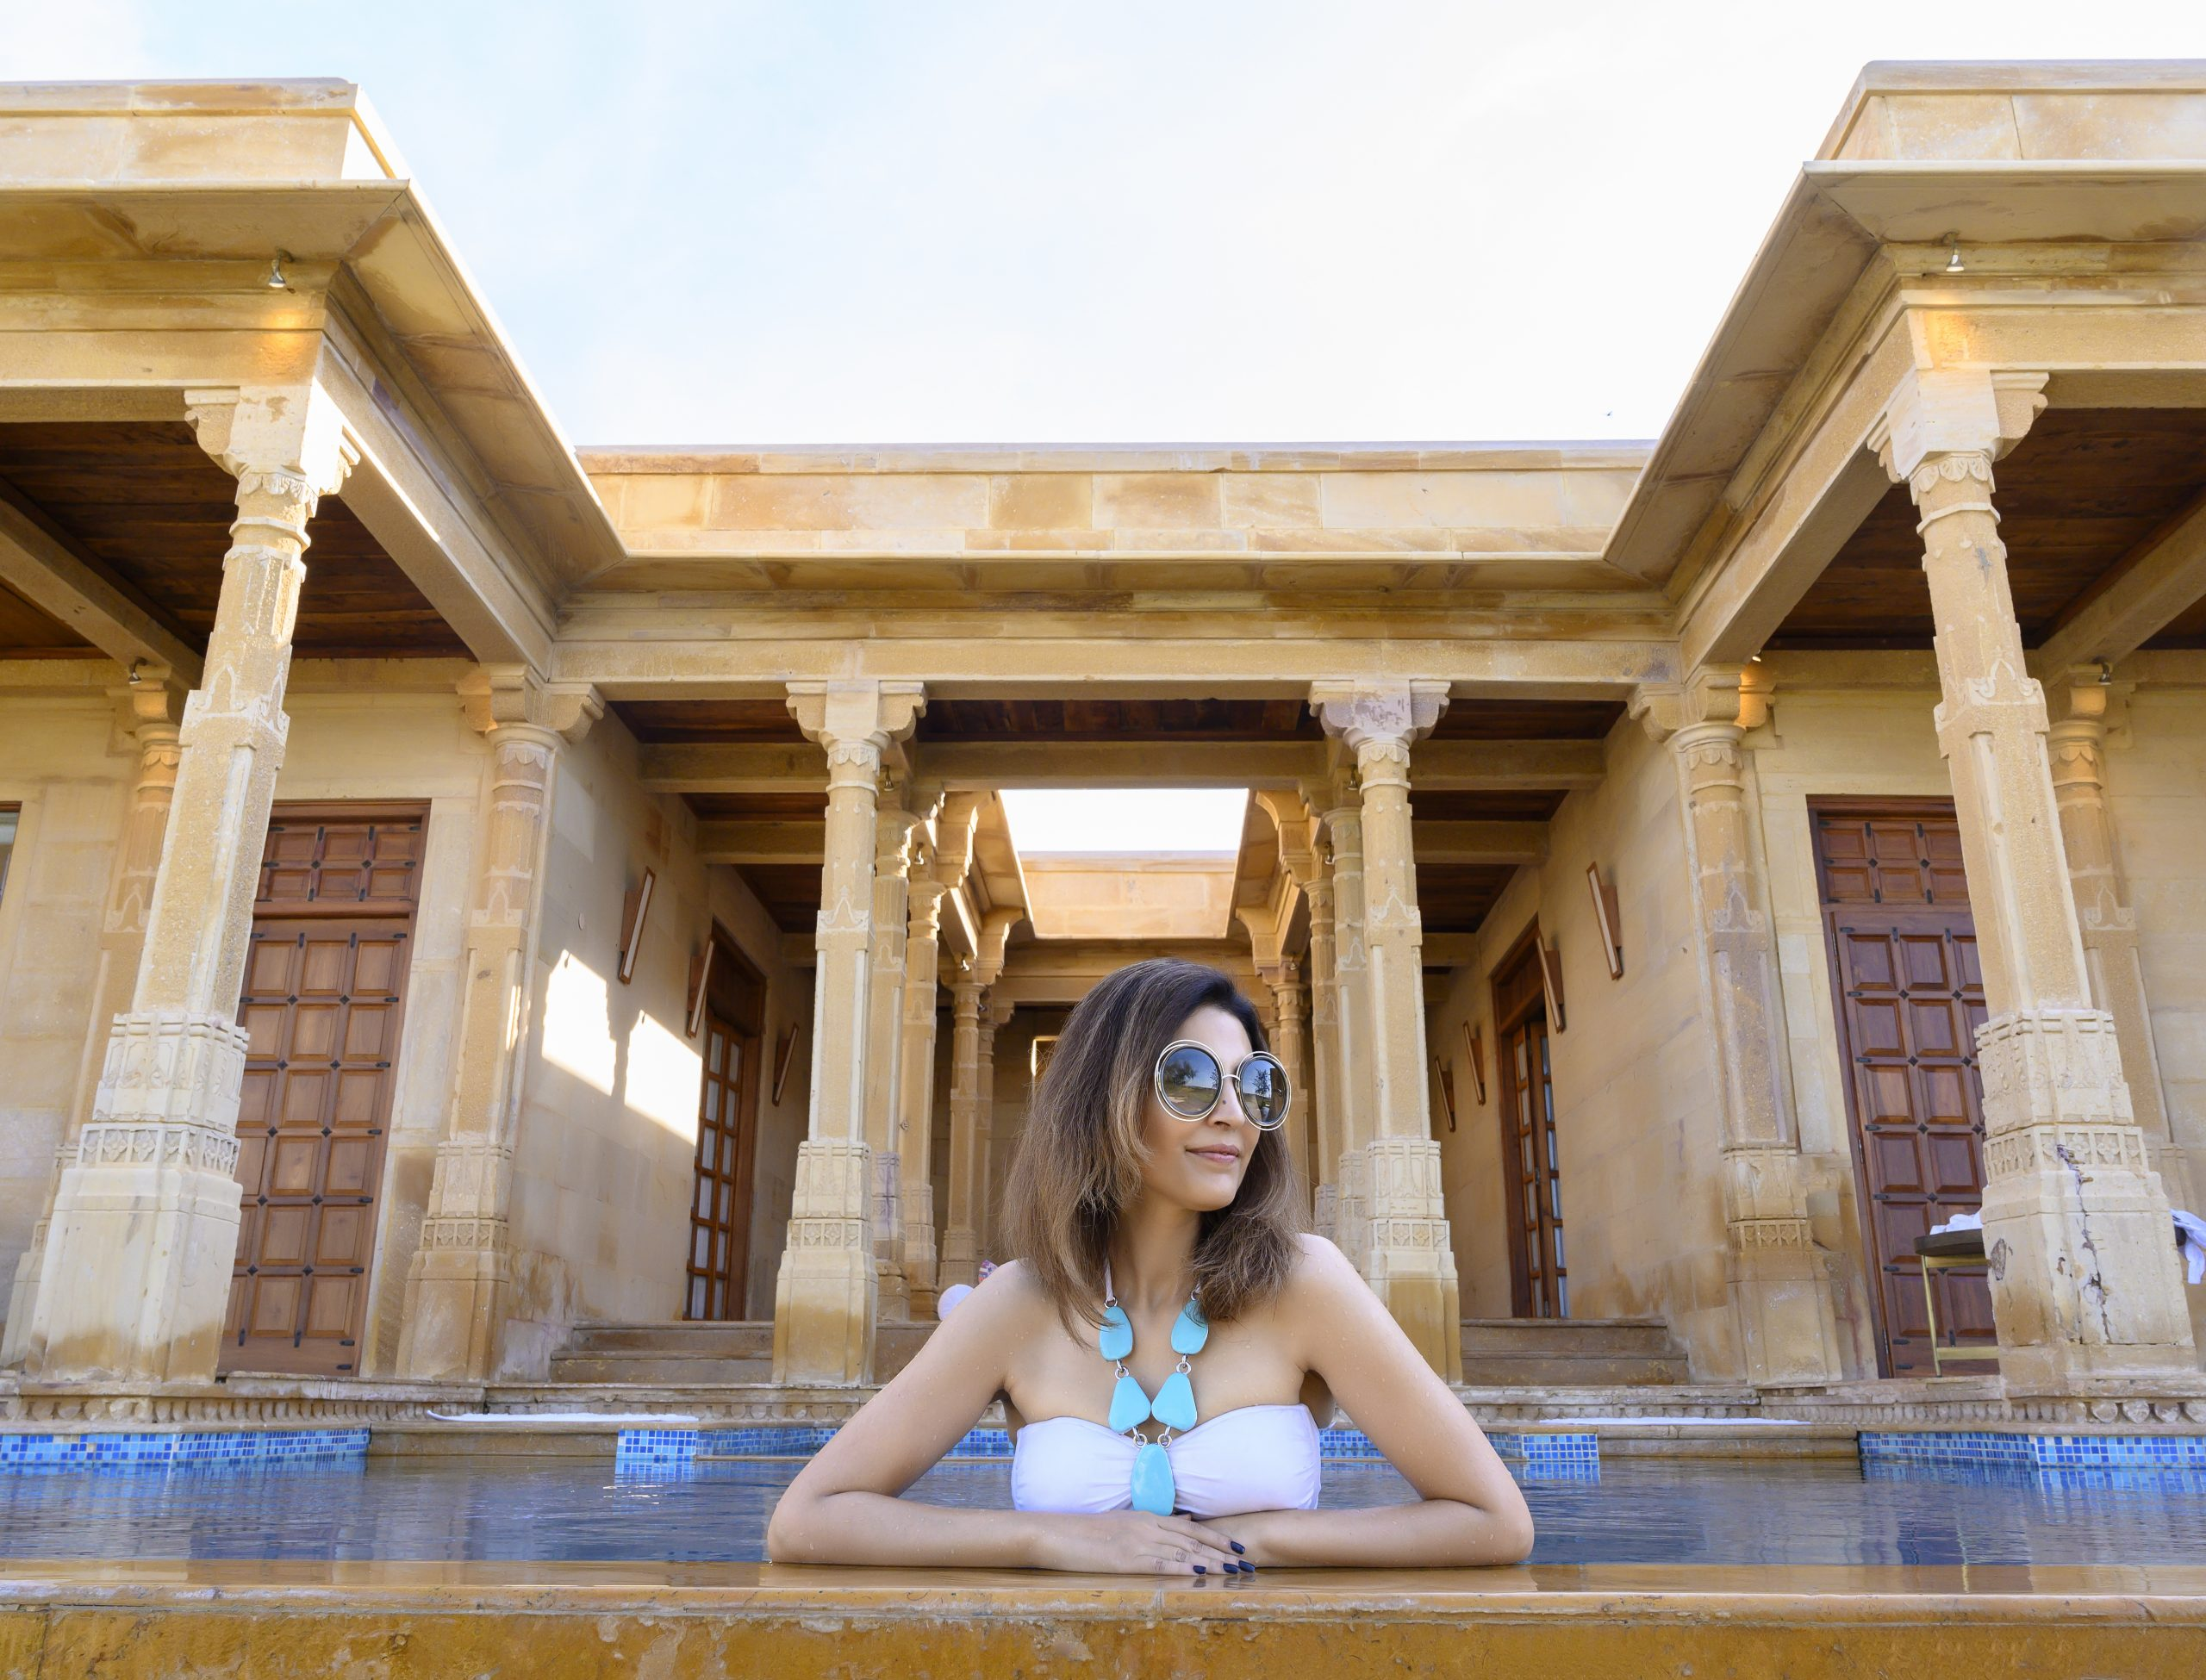 Plunge pool at the private residences of Suryagarh.